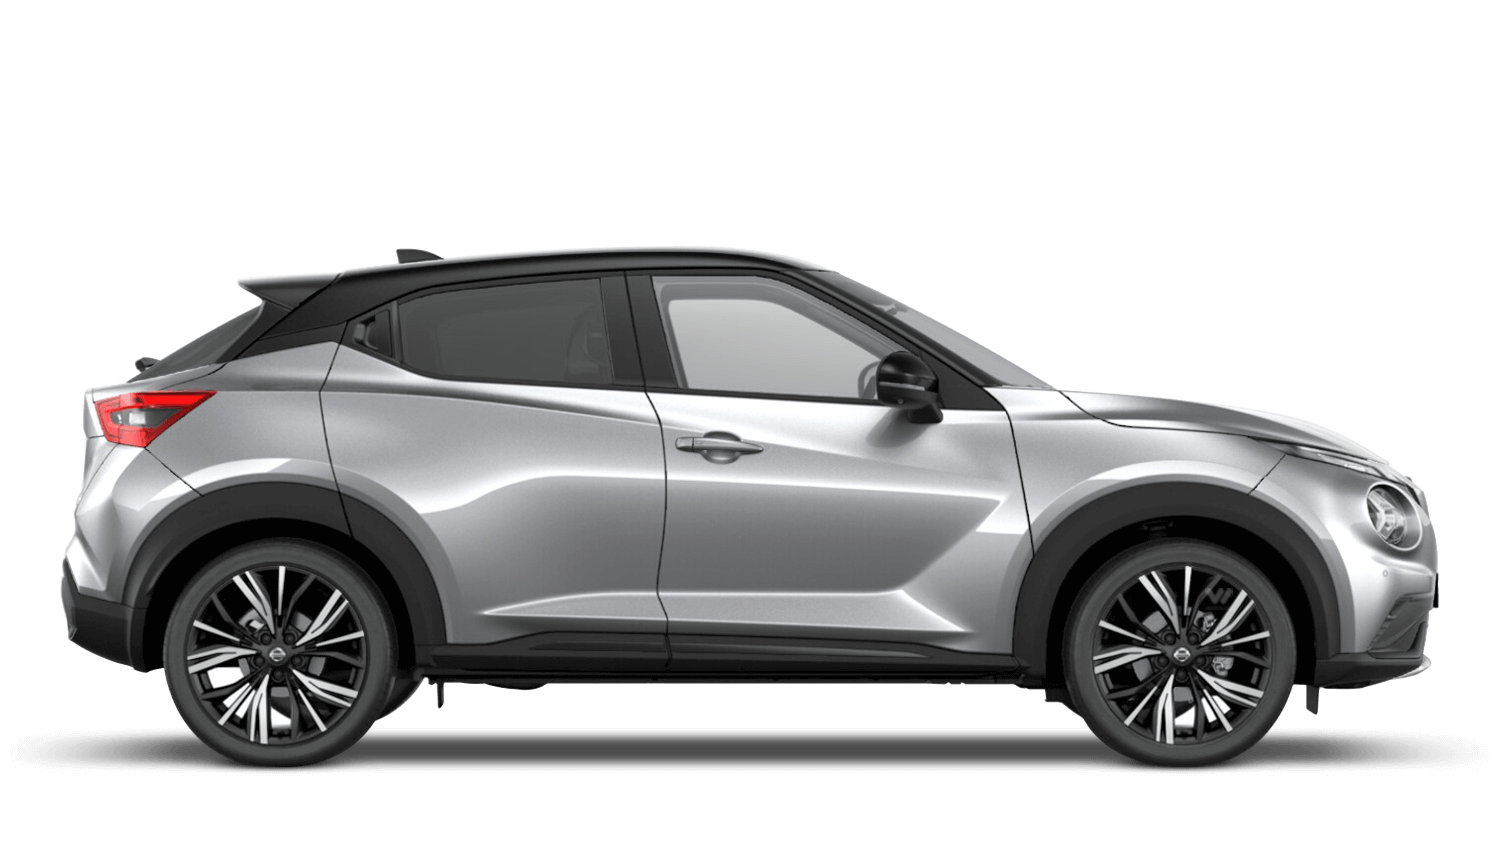 Blade Silver with Pearl Black Roof Next Generation Nissan Juke